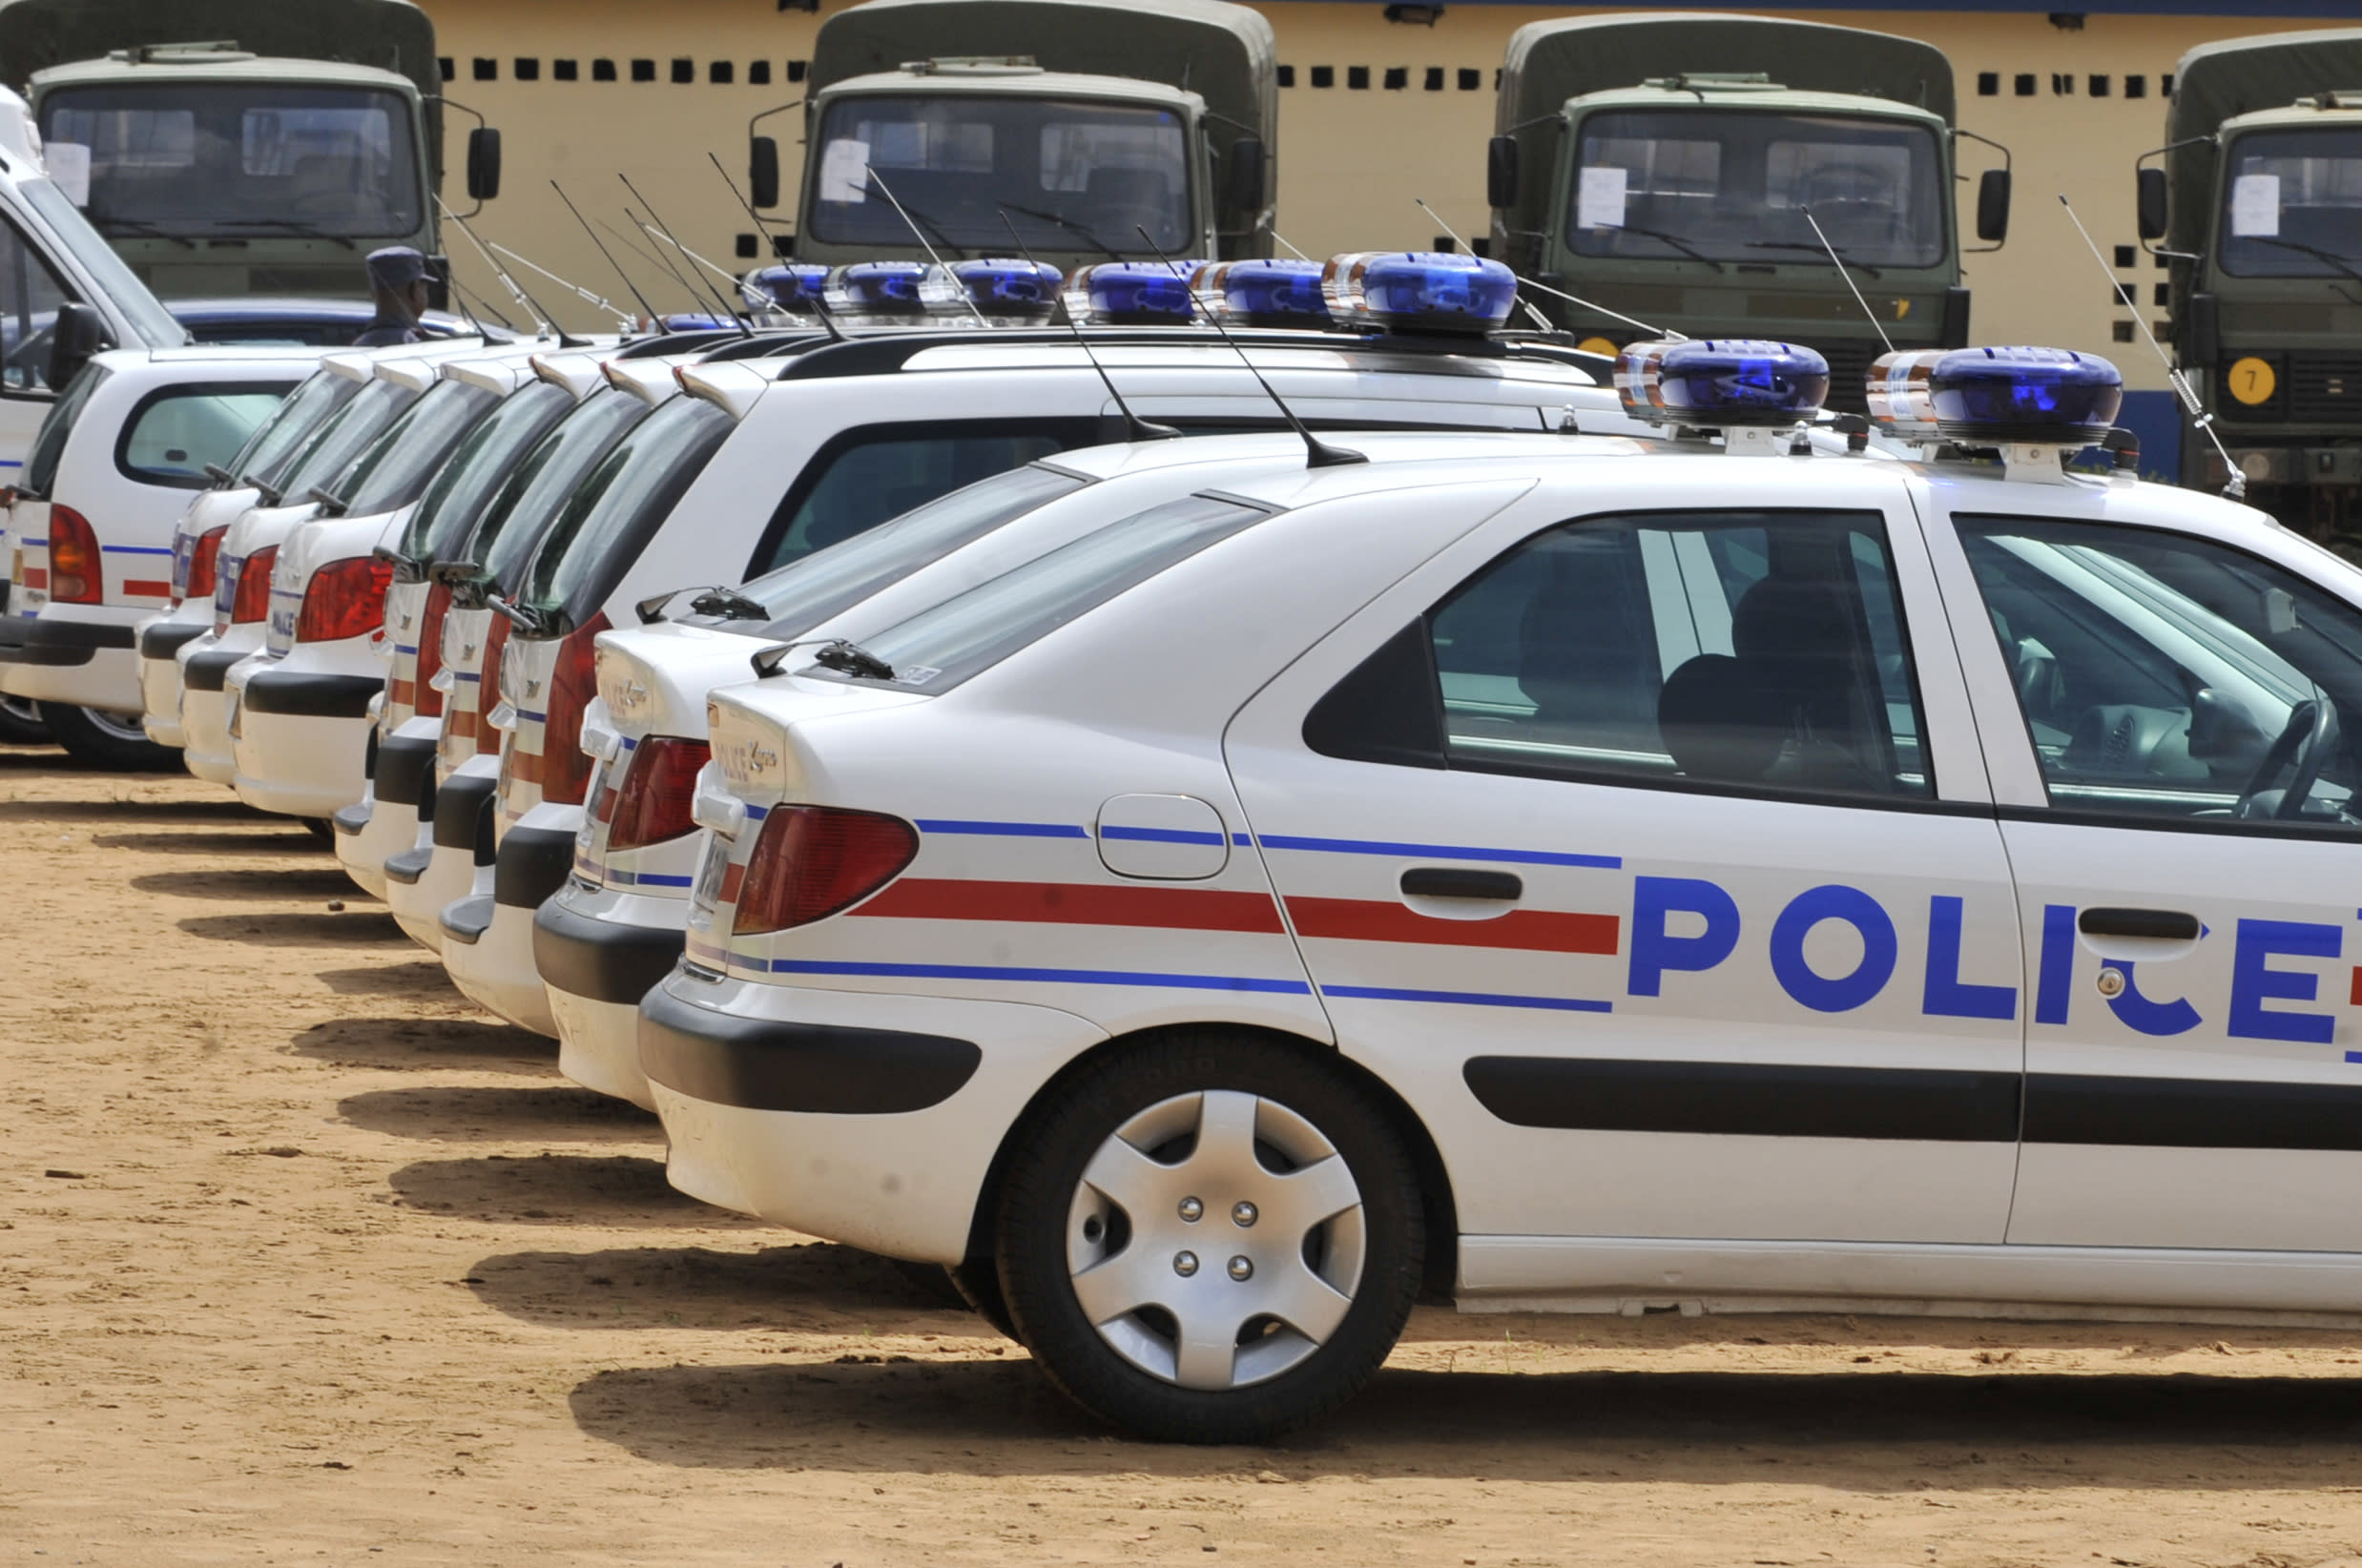 'Don't lynch' child kidnap suspects: Ivory Coast police